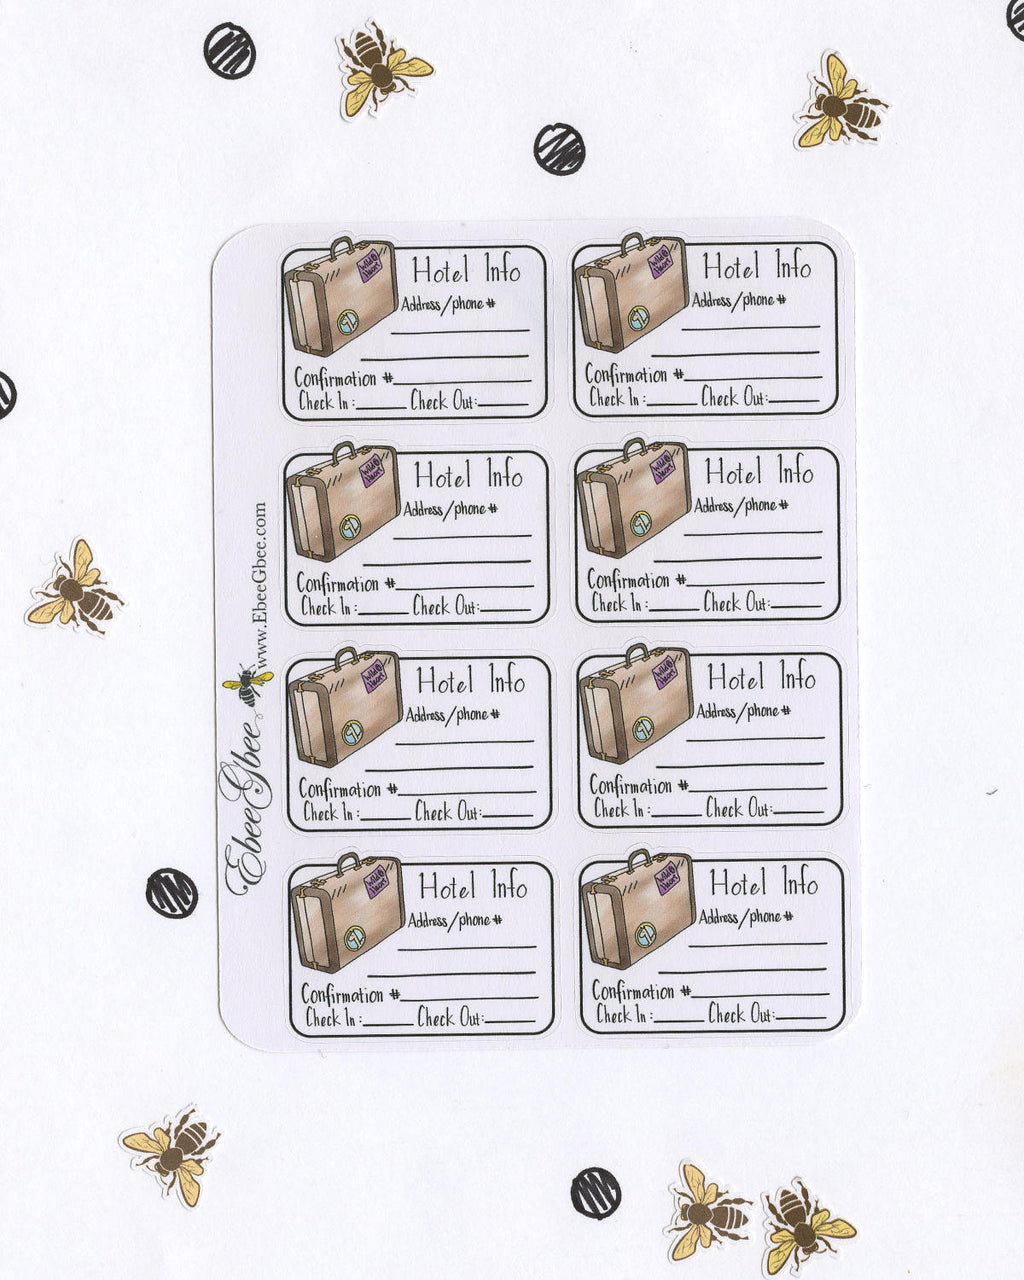 HOTEL RESEVATION TRAVEL PLANS Planner Stickers | Hand Drawn BuJo Style